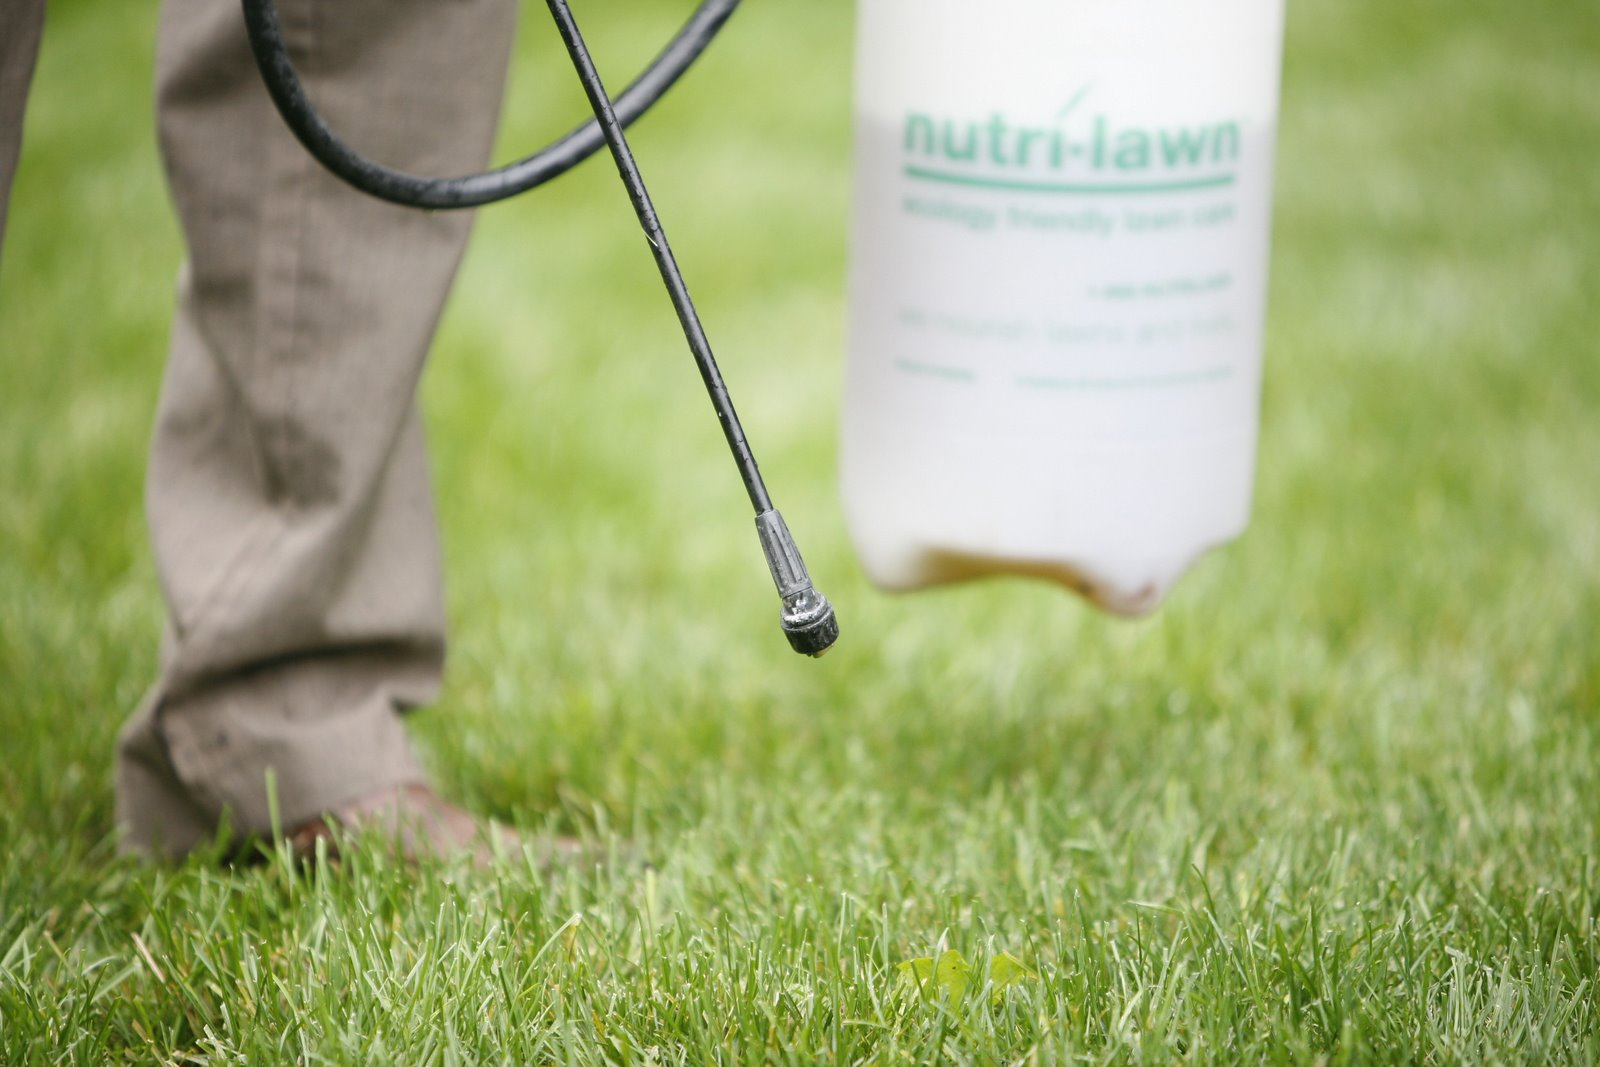 nutrilawn-traditional-weed-control-1